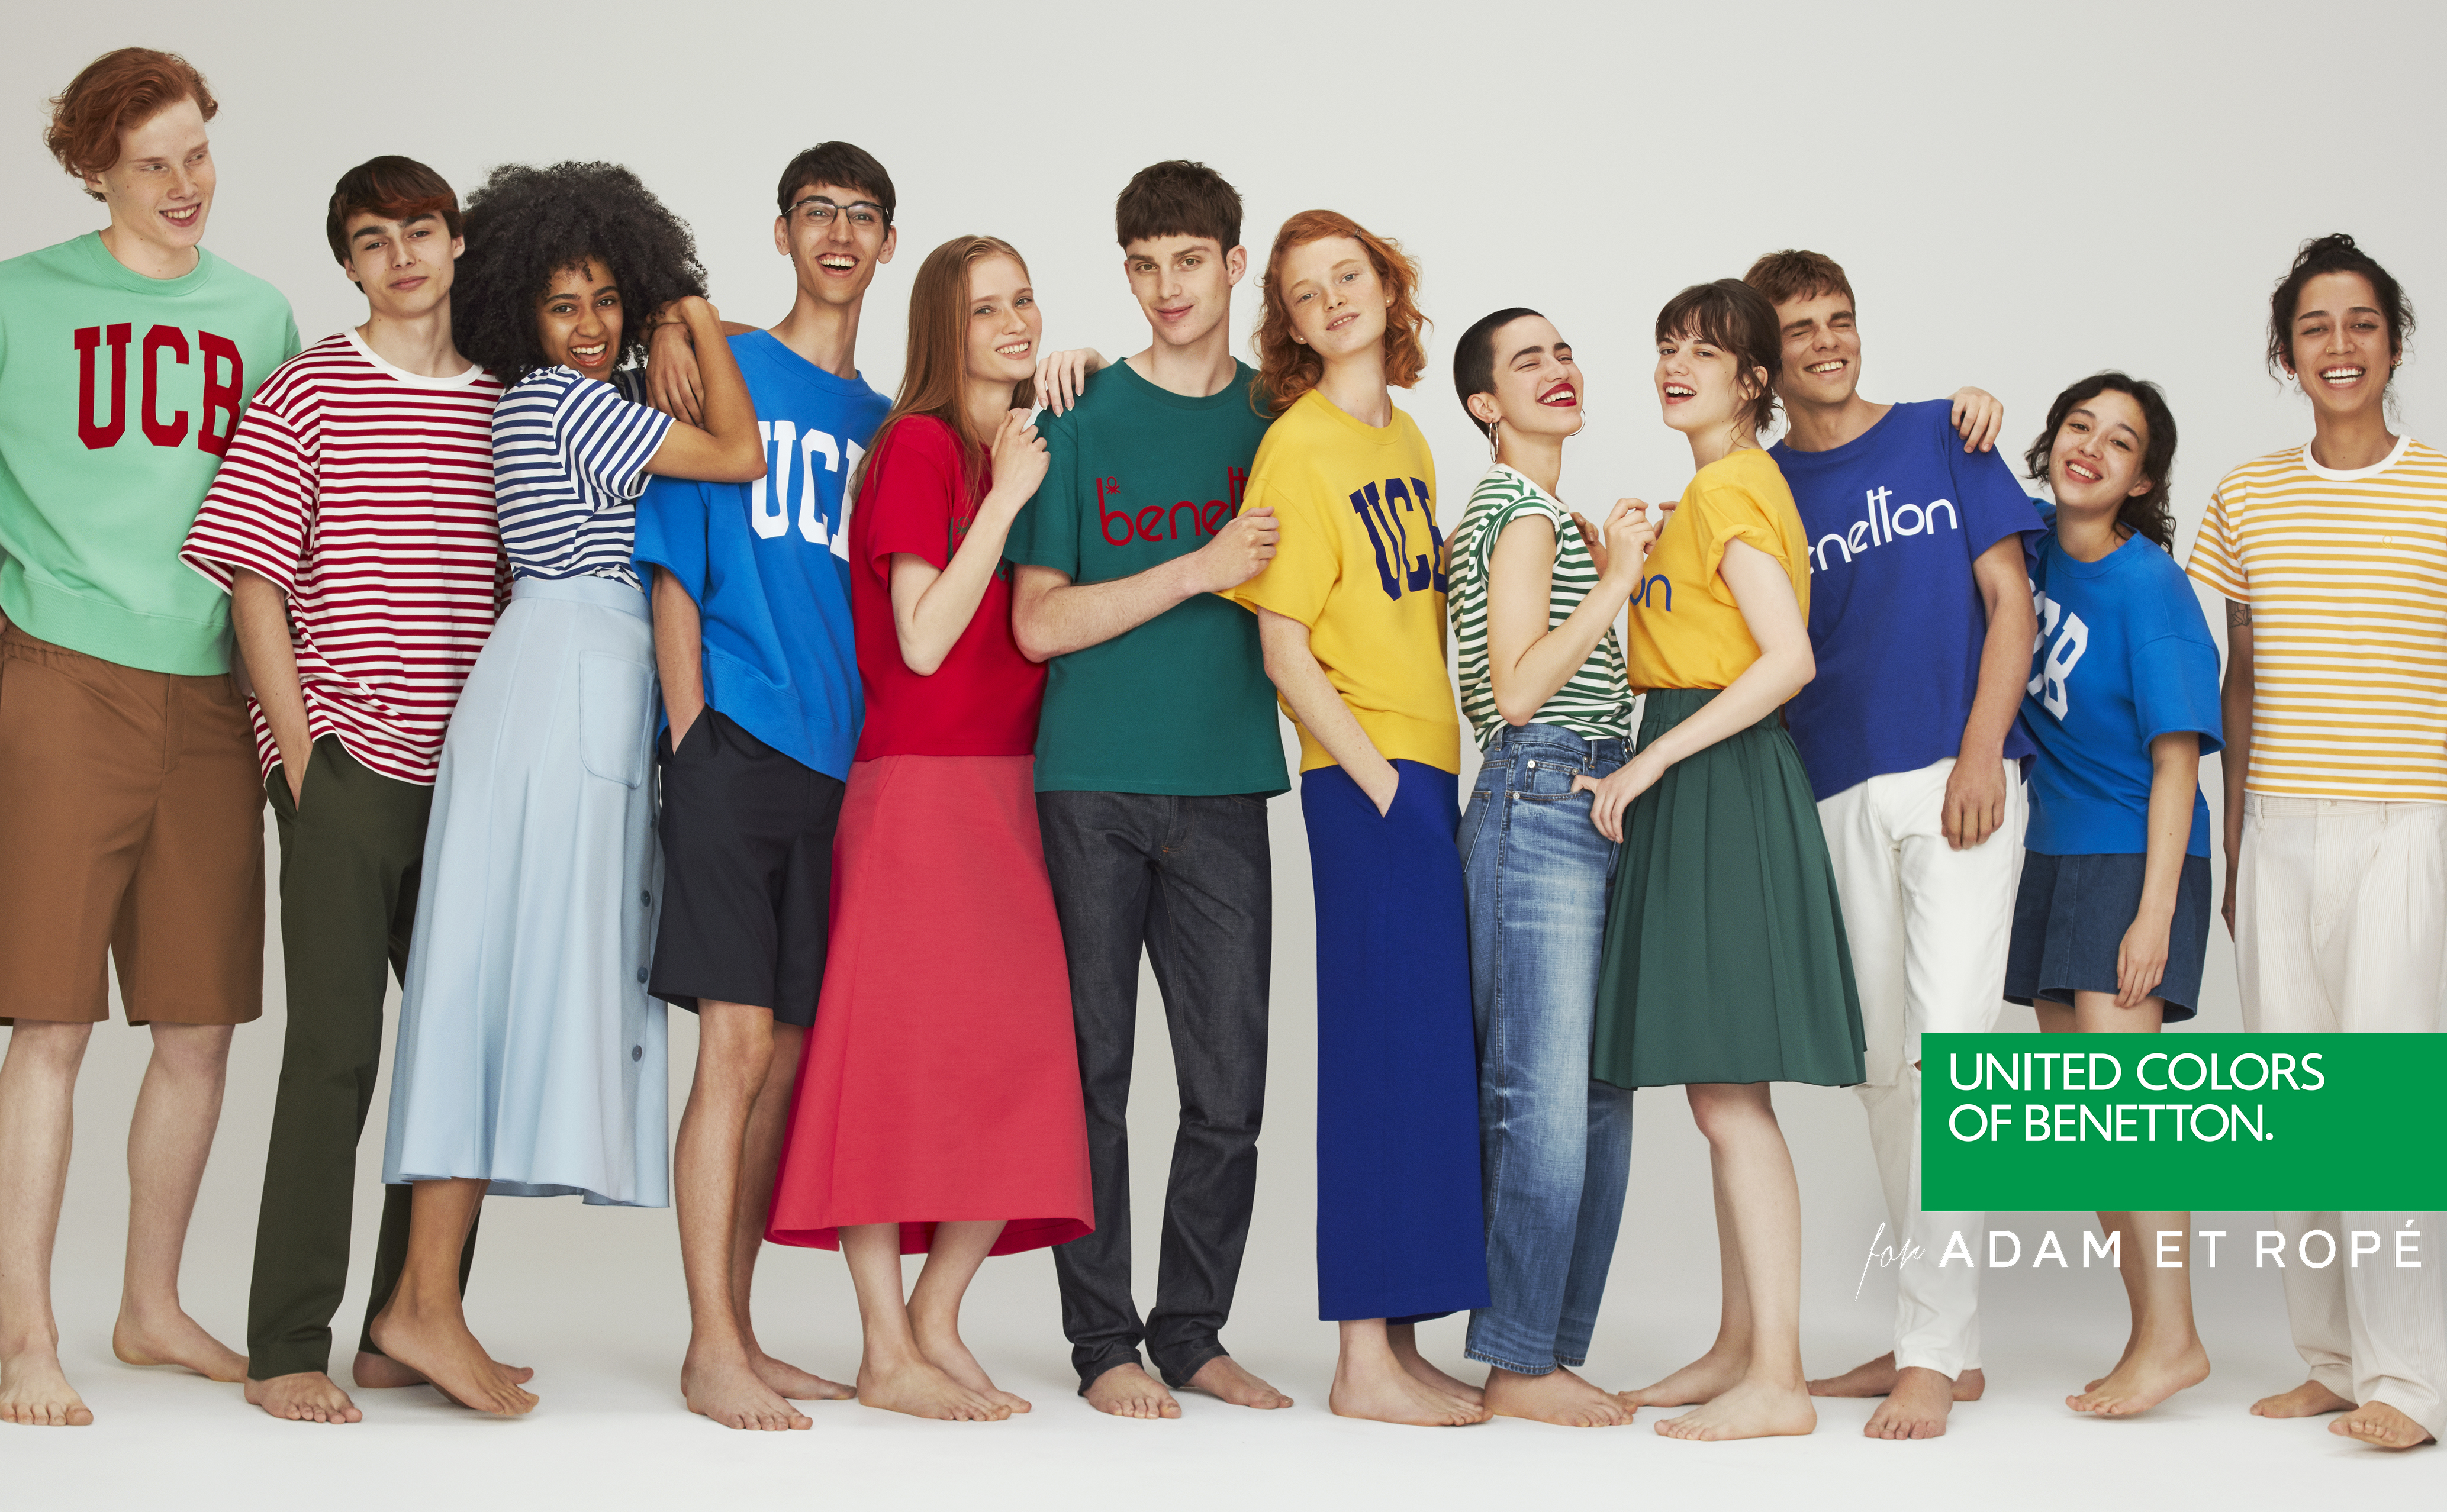 United colors of benetton for adam et rop on sale for United colors of benetton catalogo 2016